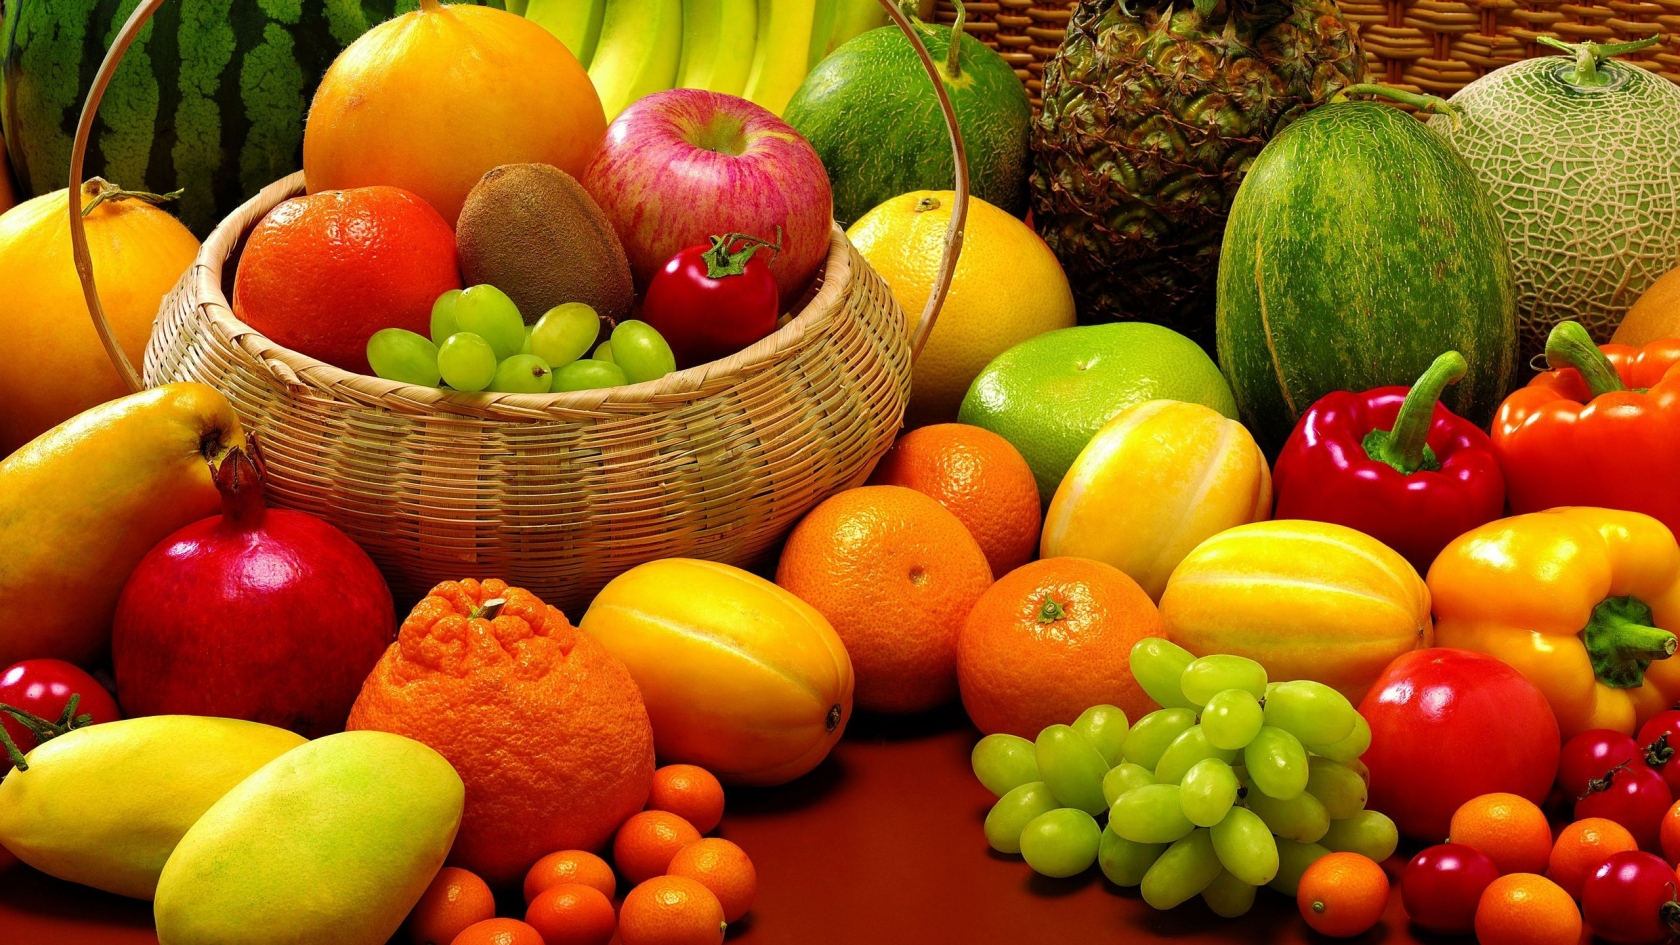 Fruits and Veggies for 1680 x 945 HDTV resolution